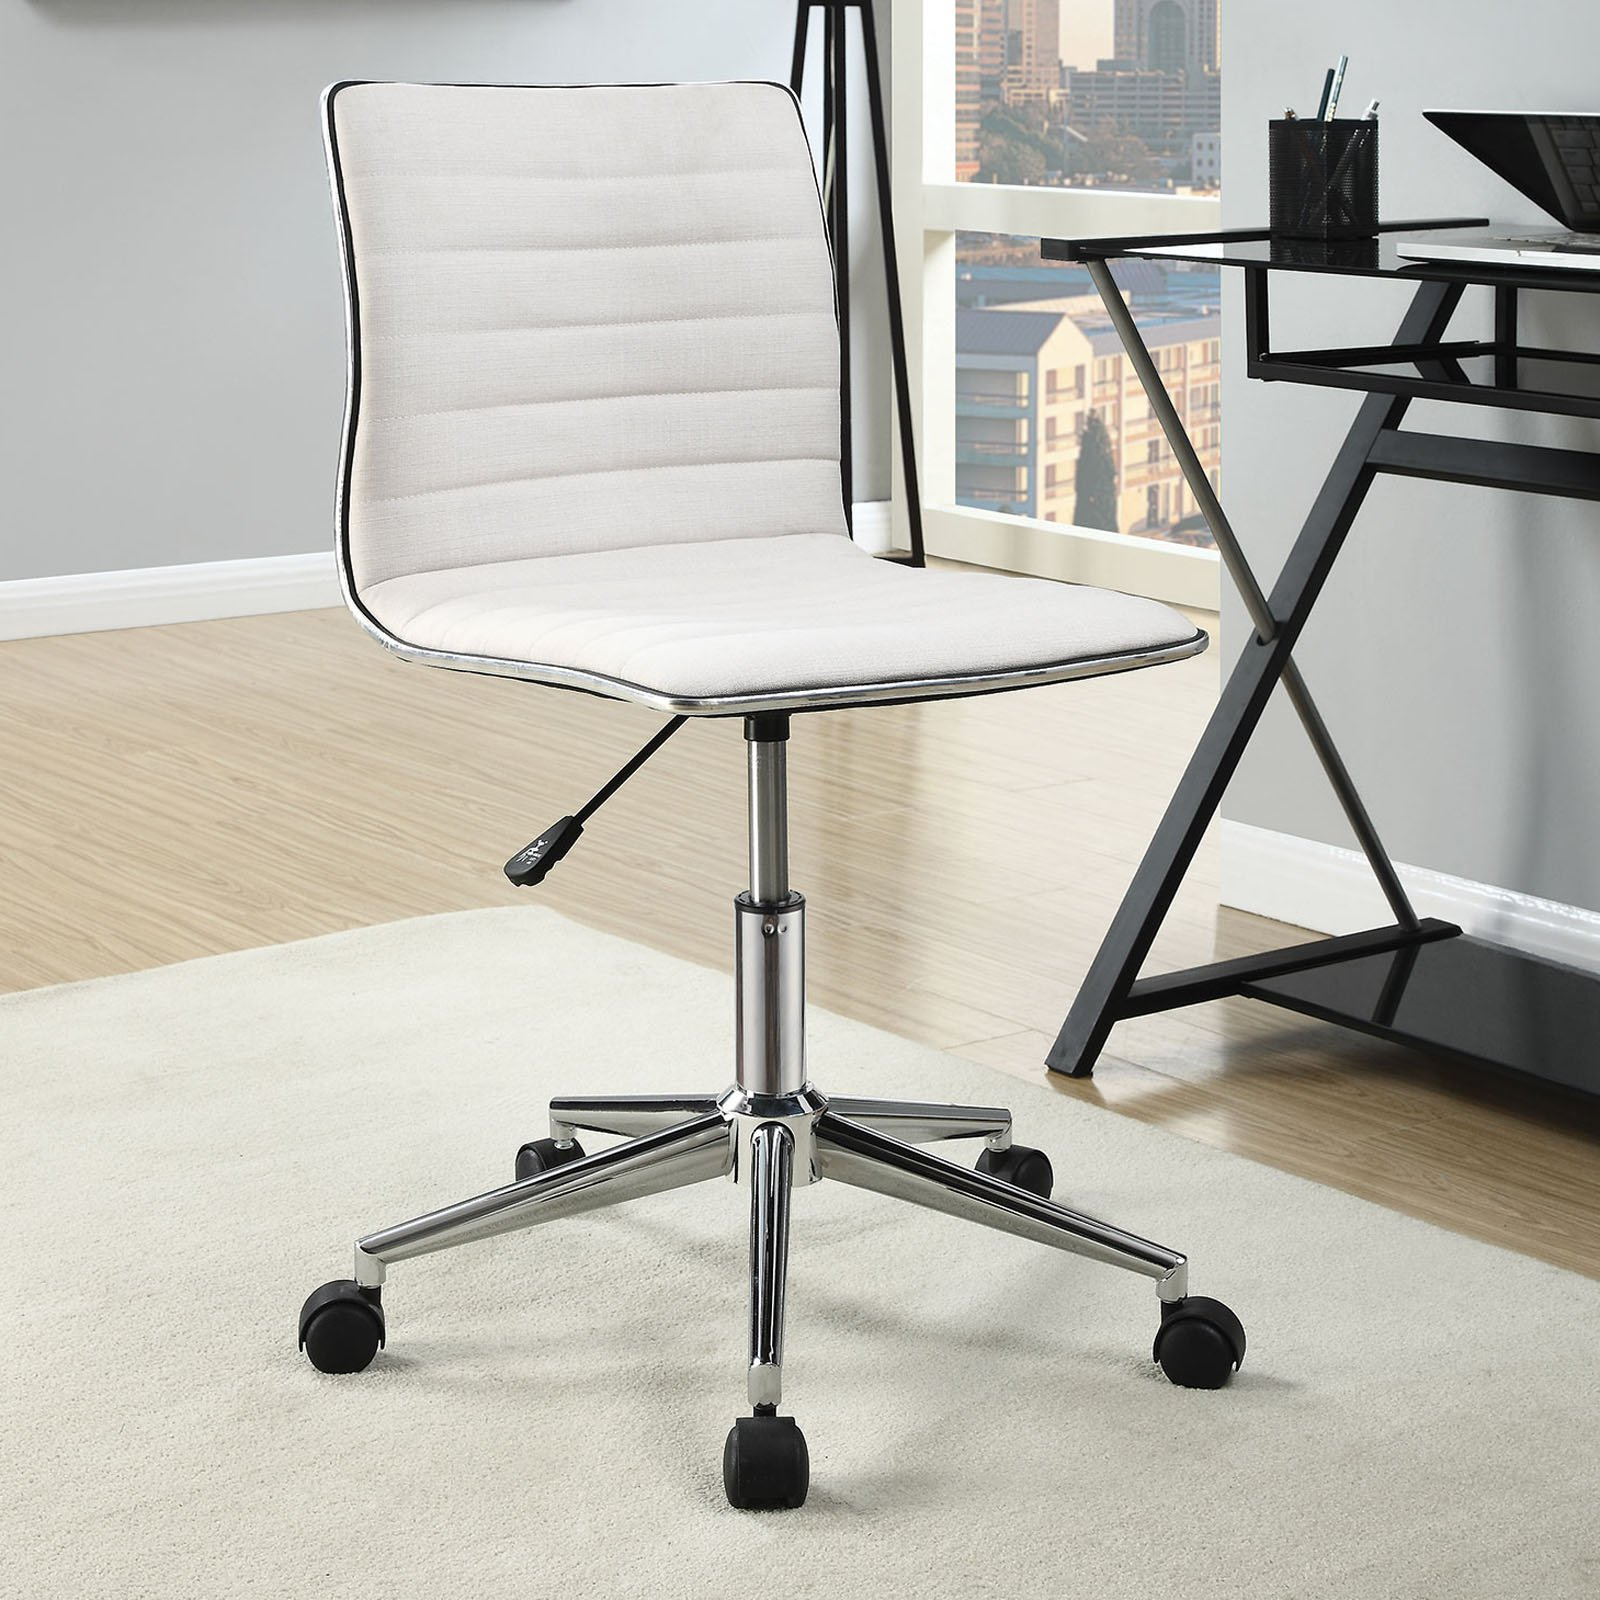 Minimalist Desk Chair Coaster Furniture Fabric Office Chair With Chrome Base